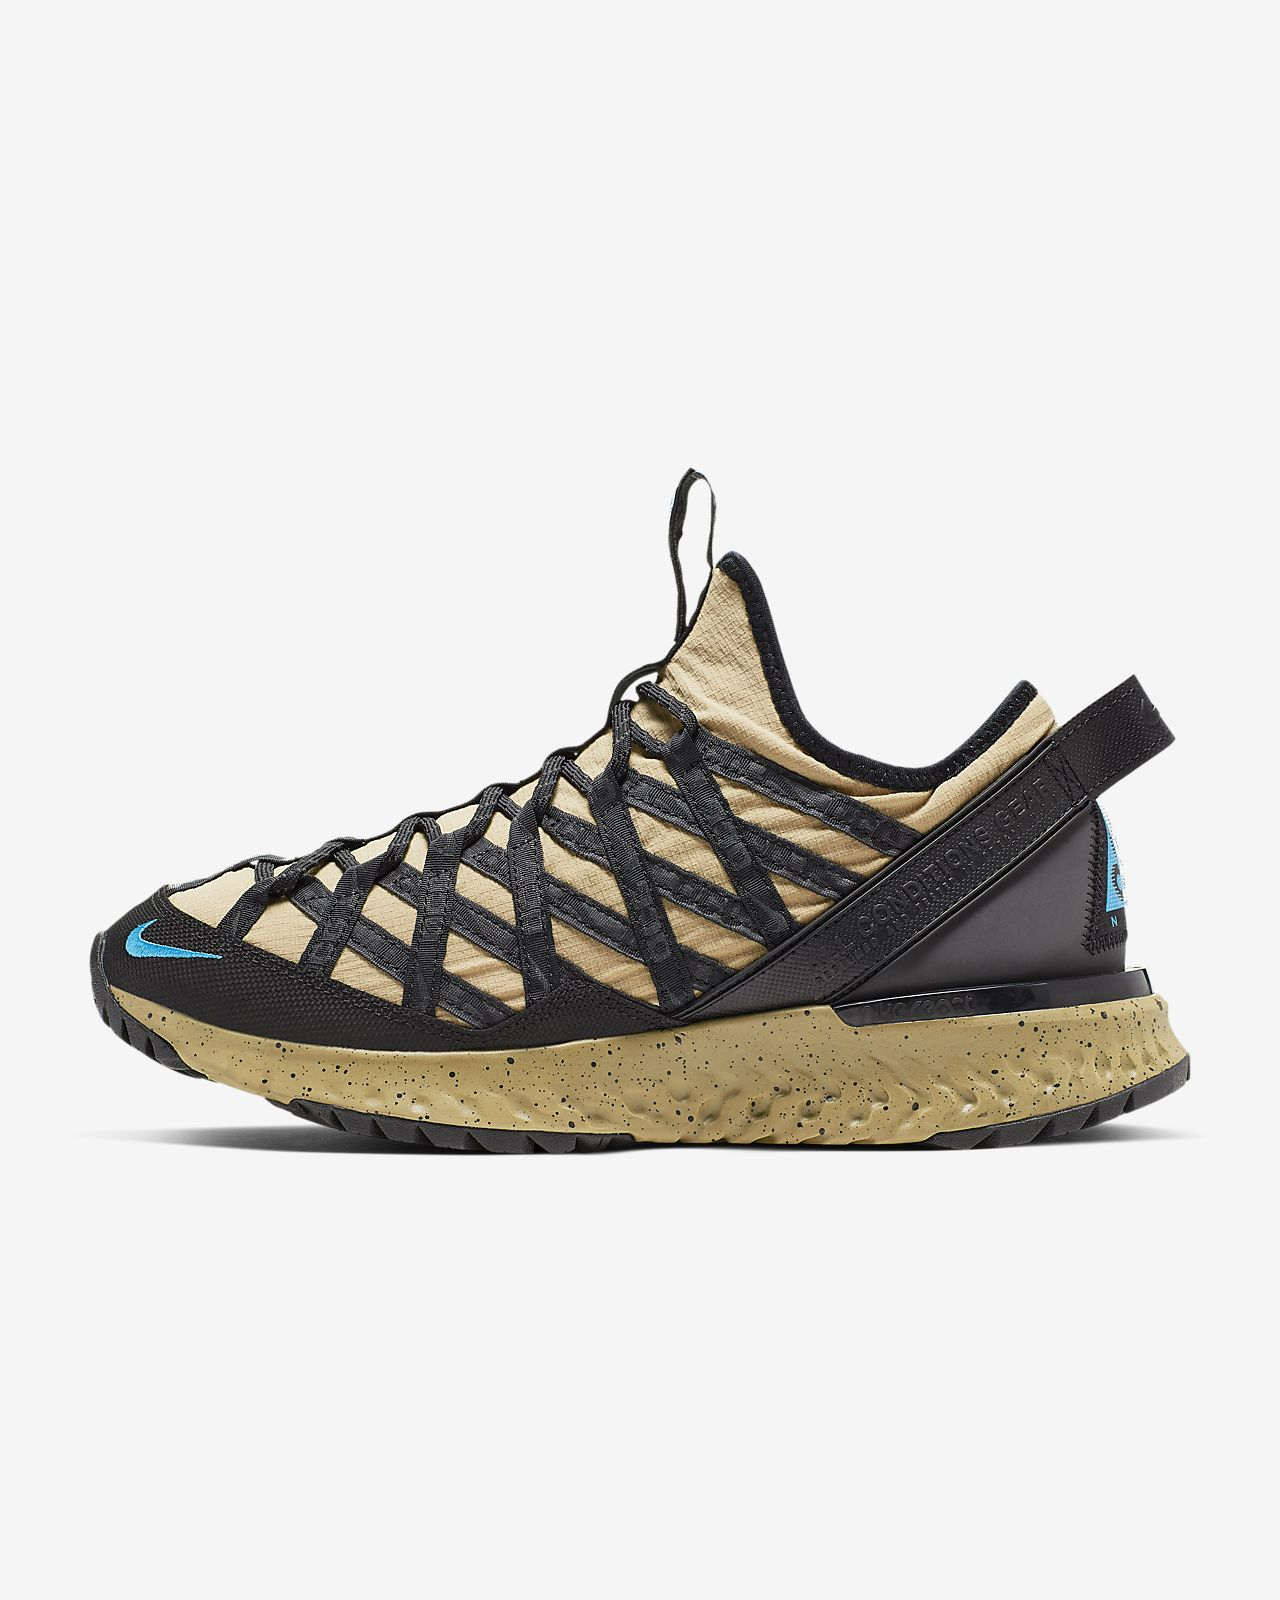 Nike ACG React Terra Gobe Men's Shoe